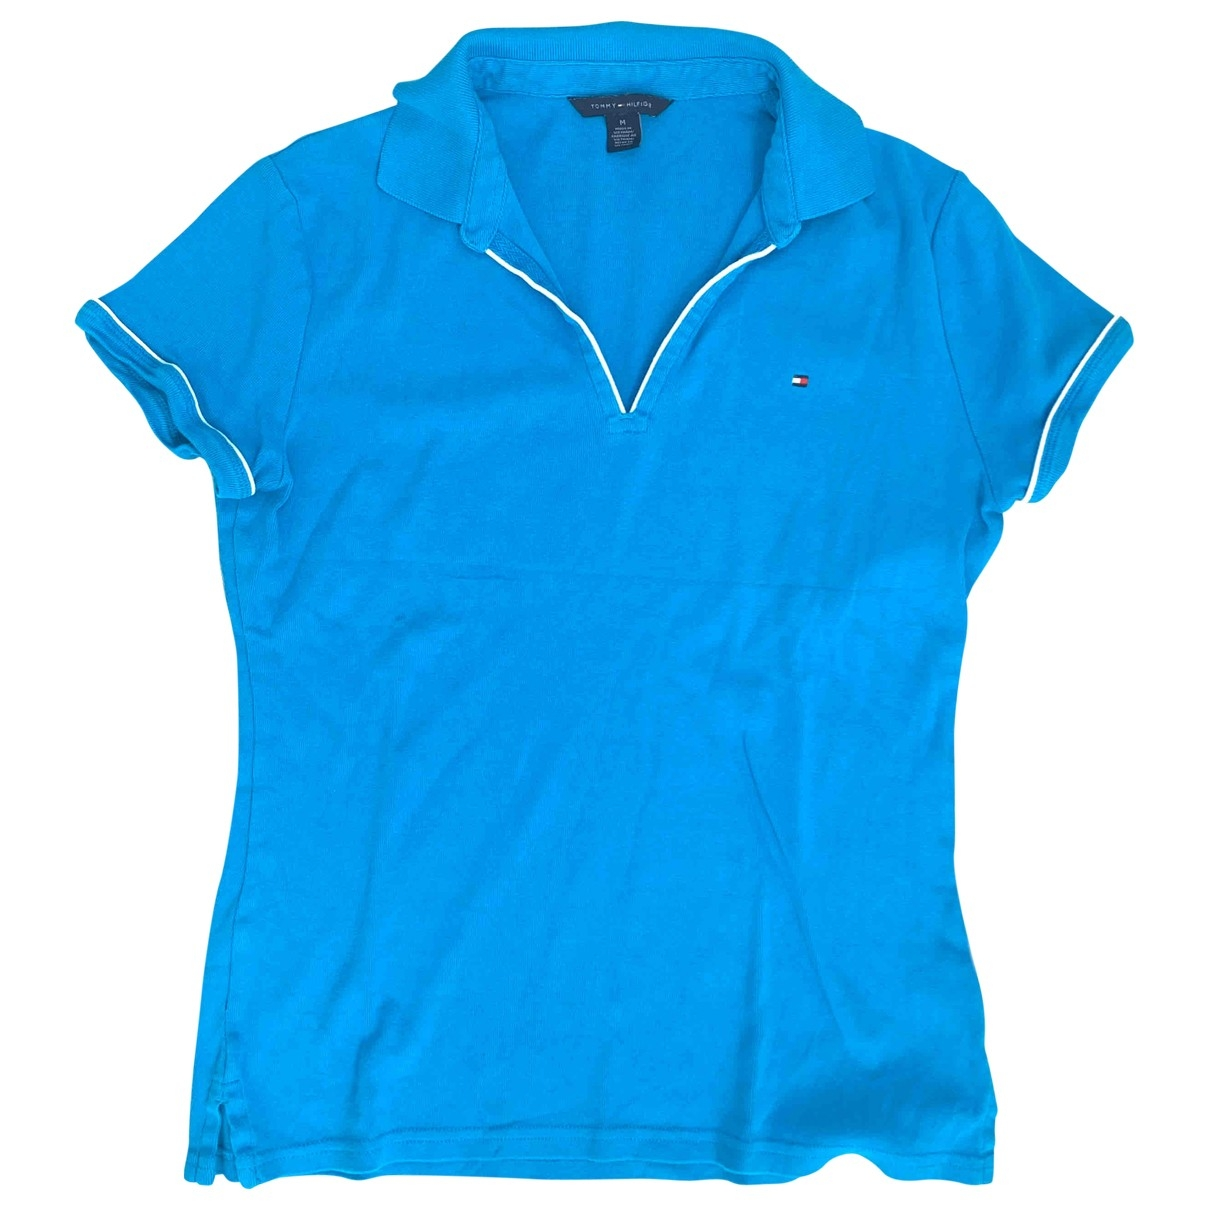 Tommy Hilfiger \N Blue Cotton  top for Women M International